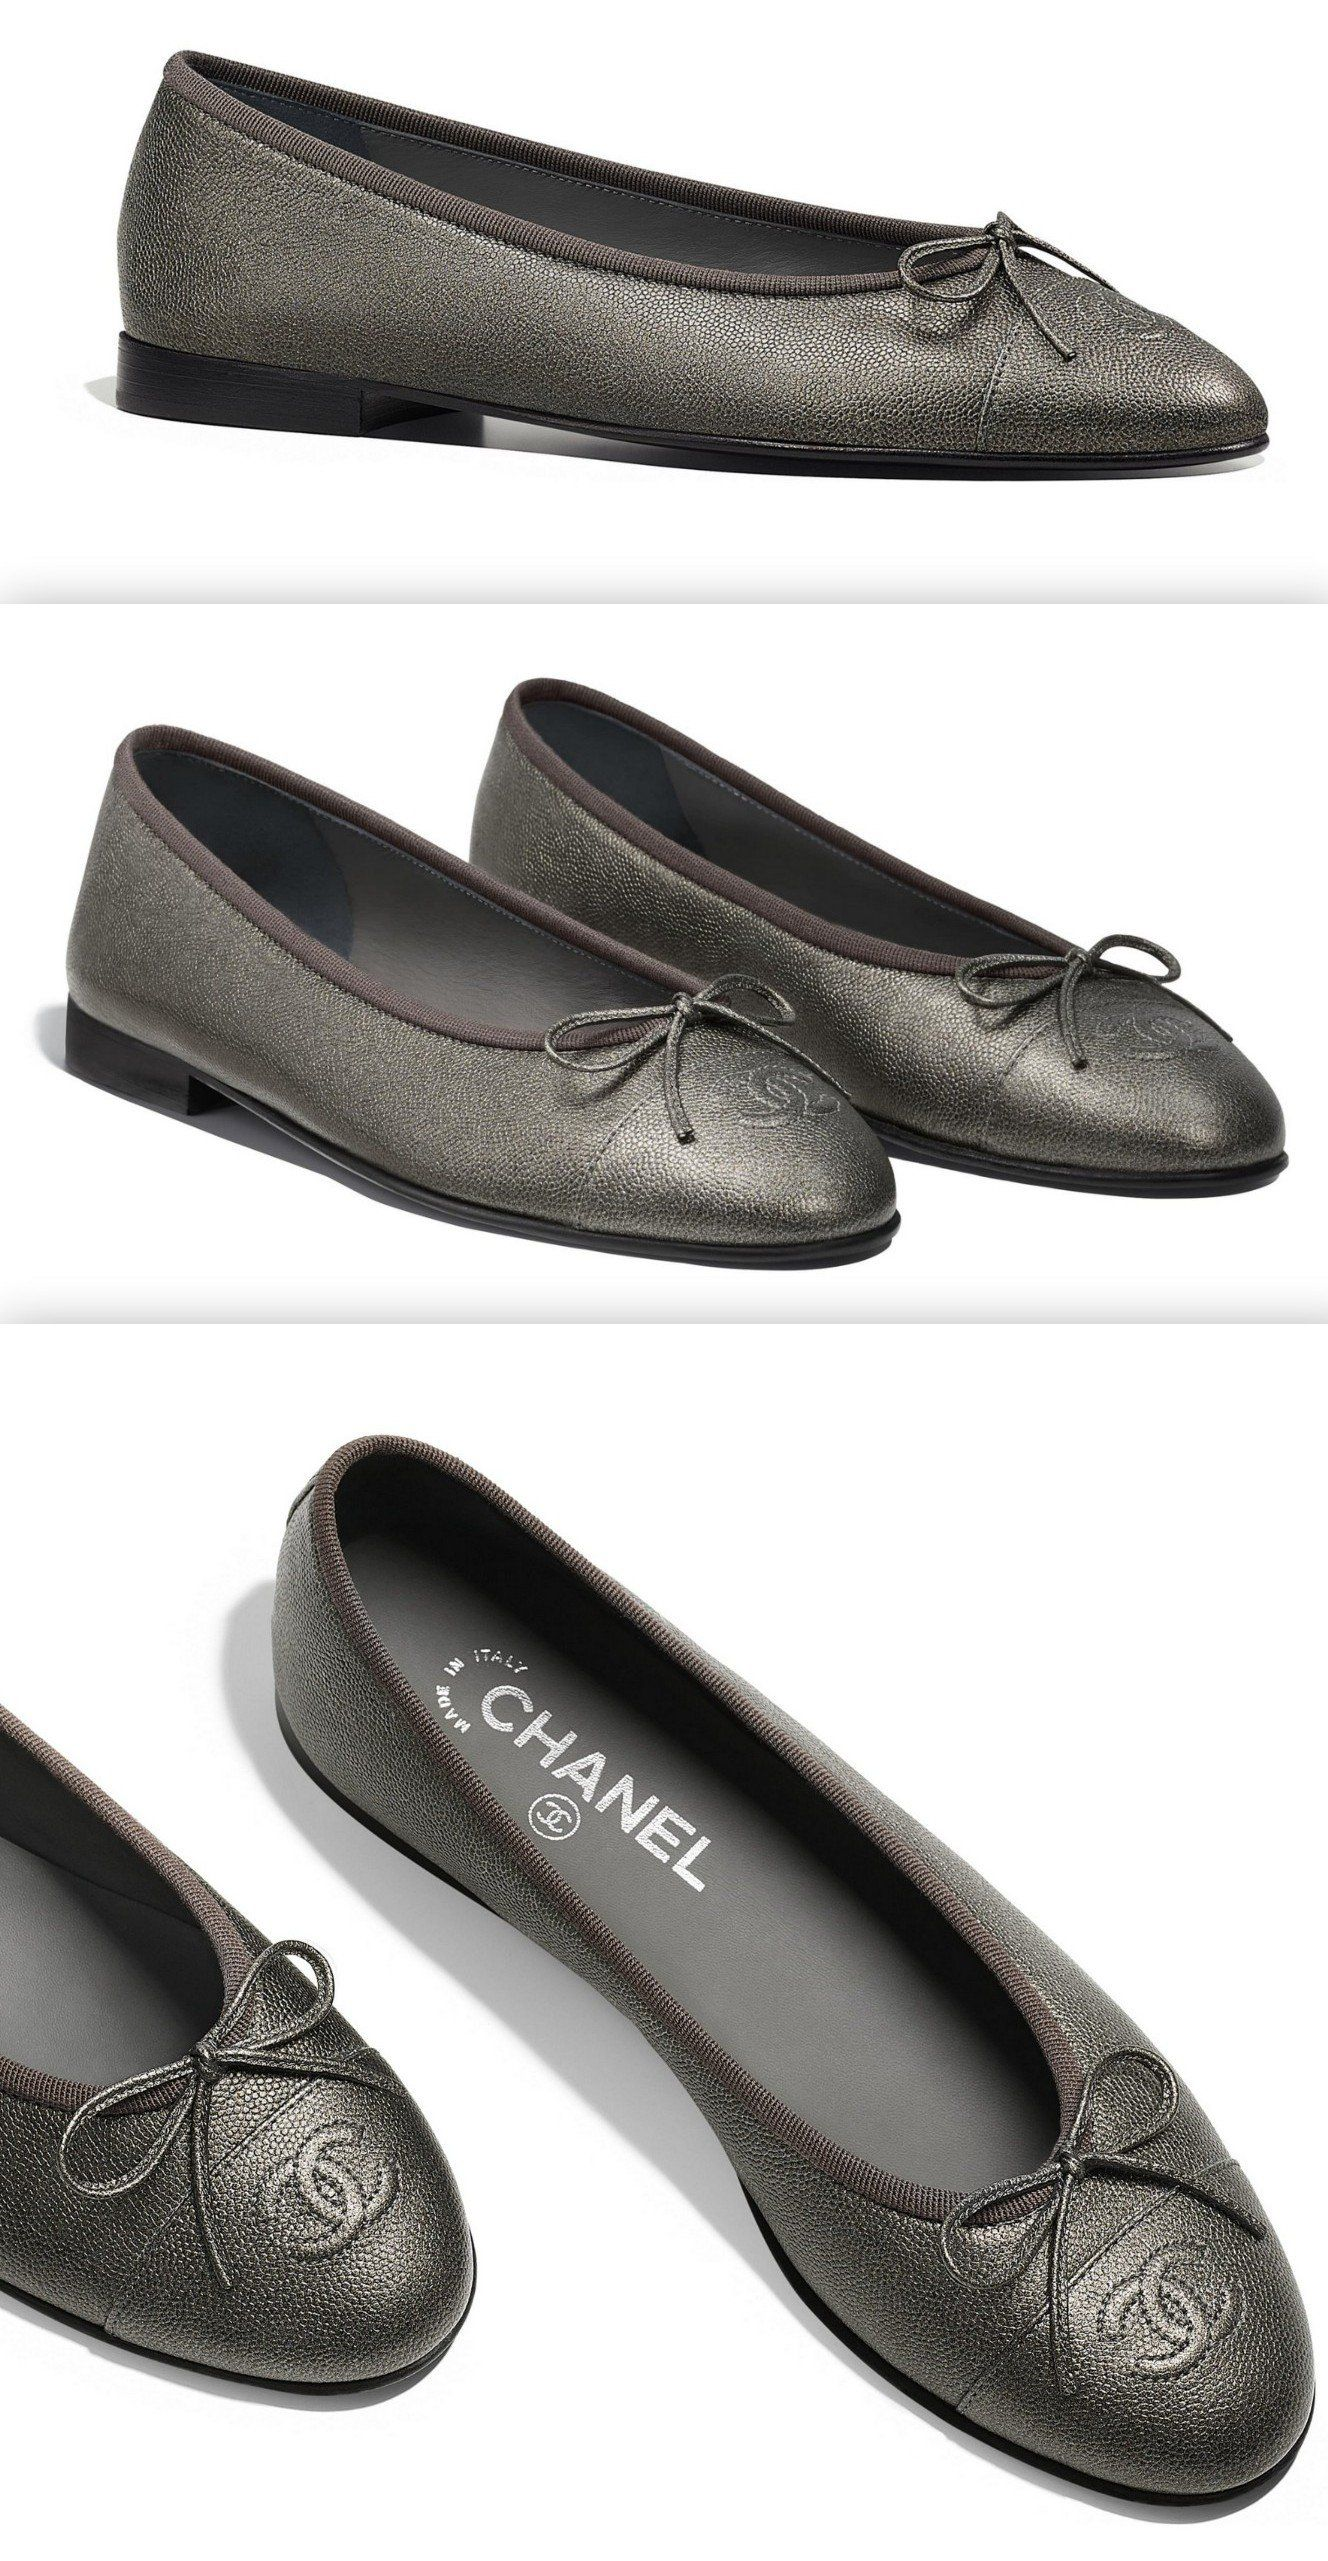 c12fa92dec35 Grained Lambskin Ballerina Flats. Find this Pin and more on Products by DESIGNER  INSPIRED CLOTHES.